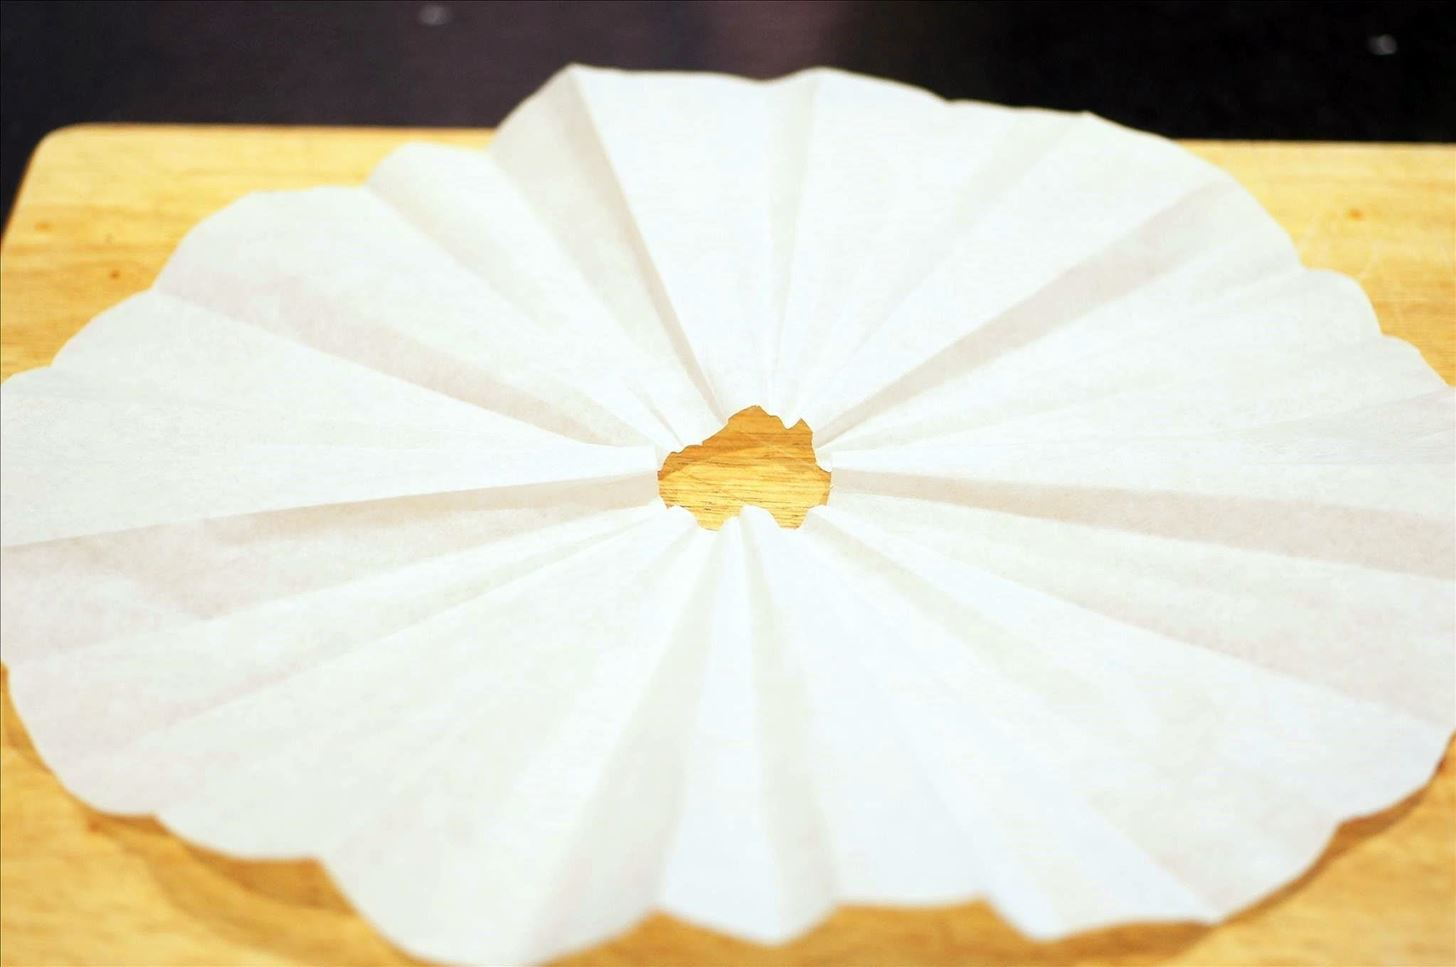 Cook Like a Chef: Use Parchment Paper Lids Instead